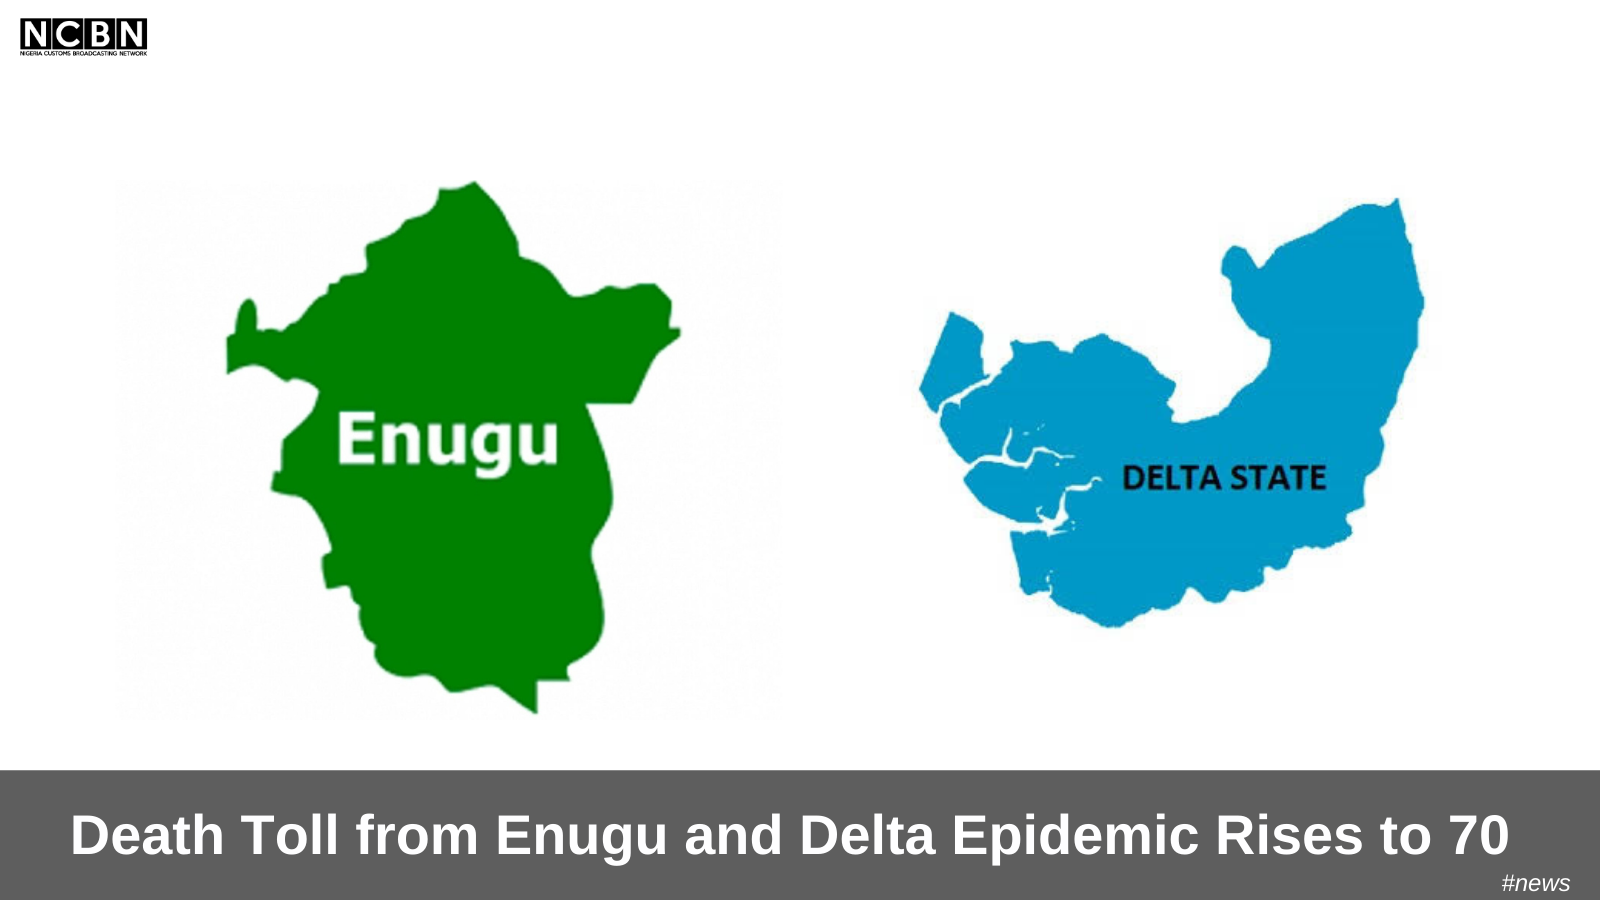 enugu and delta death toll